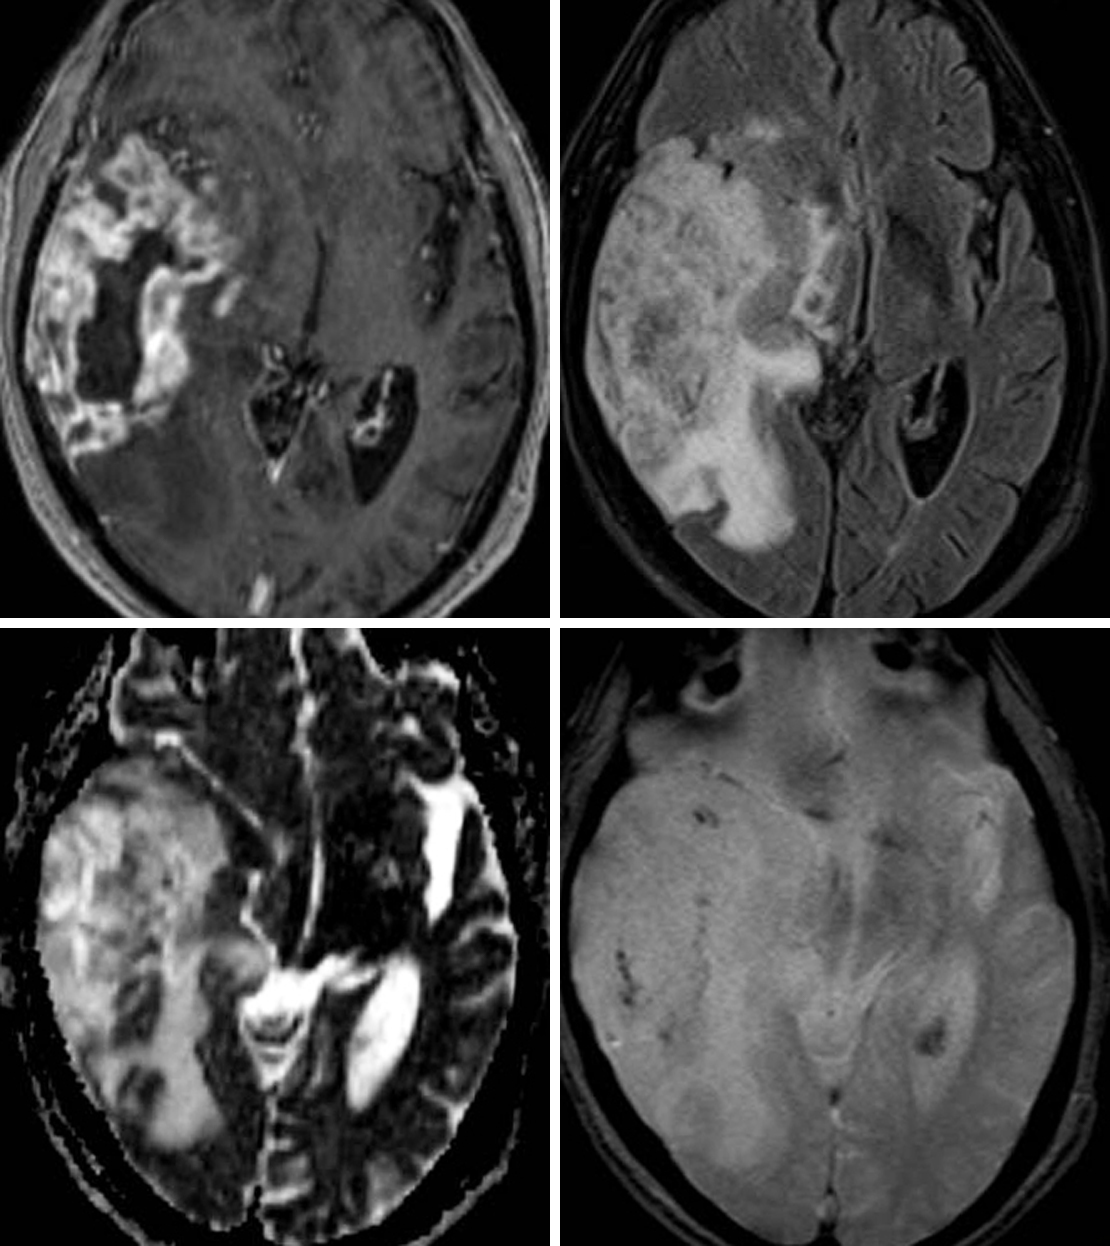 Figure 1: (Top Left) The avid peripheral enhancement and central necrosis seen in this lesion on postcontrast T1WI is typical of a GBM. (Top Right) Infiltrative FLAIR hyperintensity extending beyond the enhancing margins usually represents a combination of edema and nonenhancing infiltrative tumor. (Bottom Left) Areas of low signal intensity in regions of known tumor on ADC imaging usually indicate hypercellularity. (Bottom Right) Hemorrhagic foci are also not uncommonly seen on GRE or SWI, as in this patient's GBM.